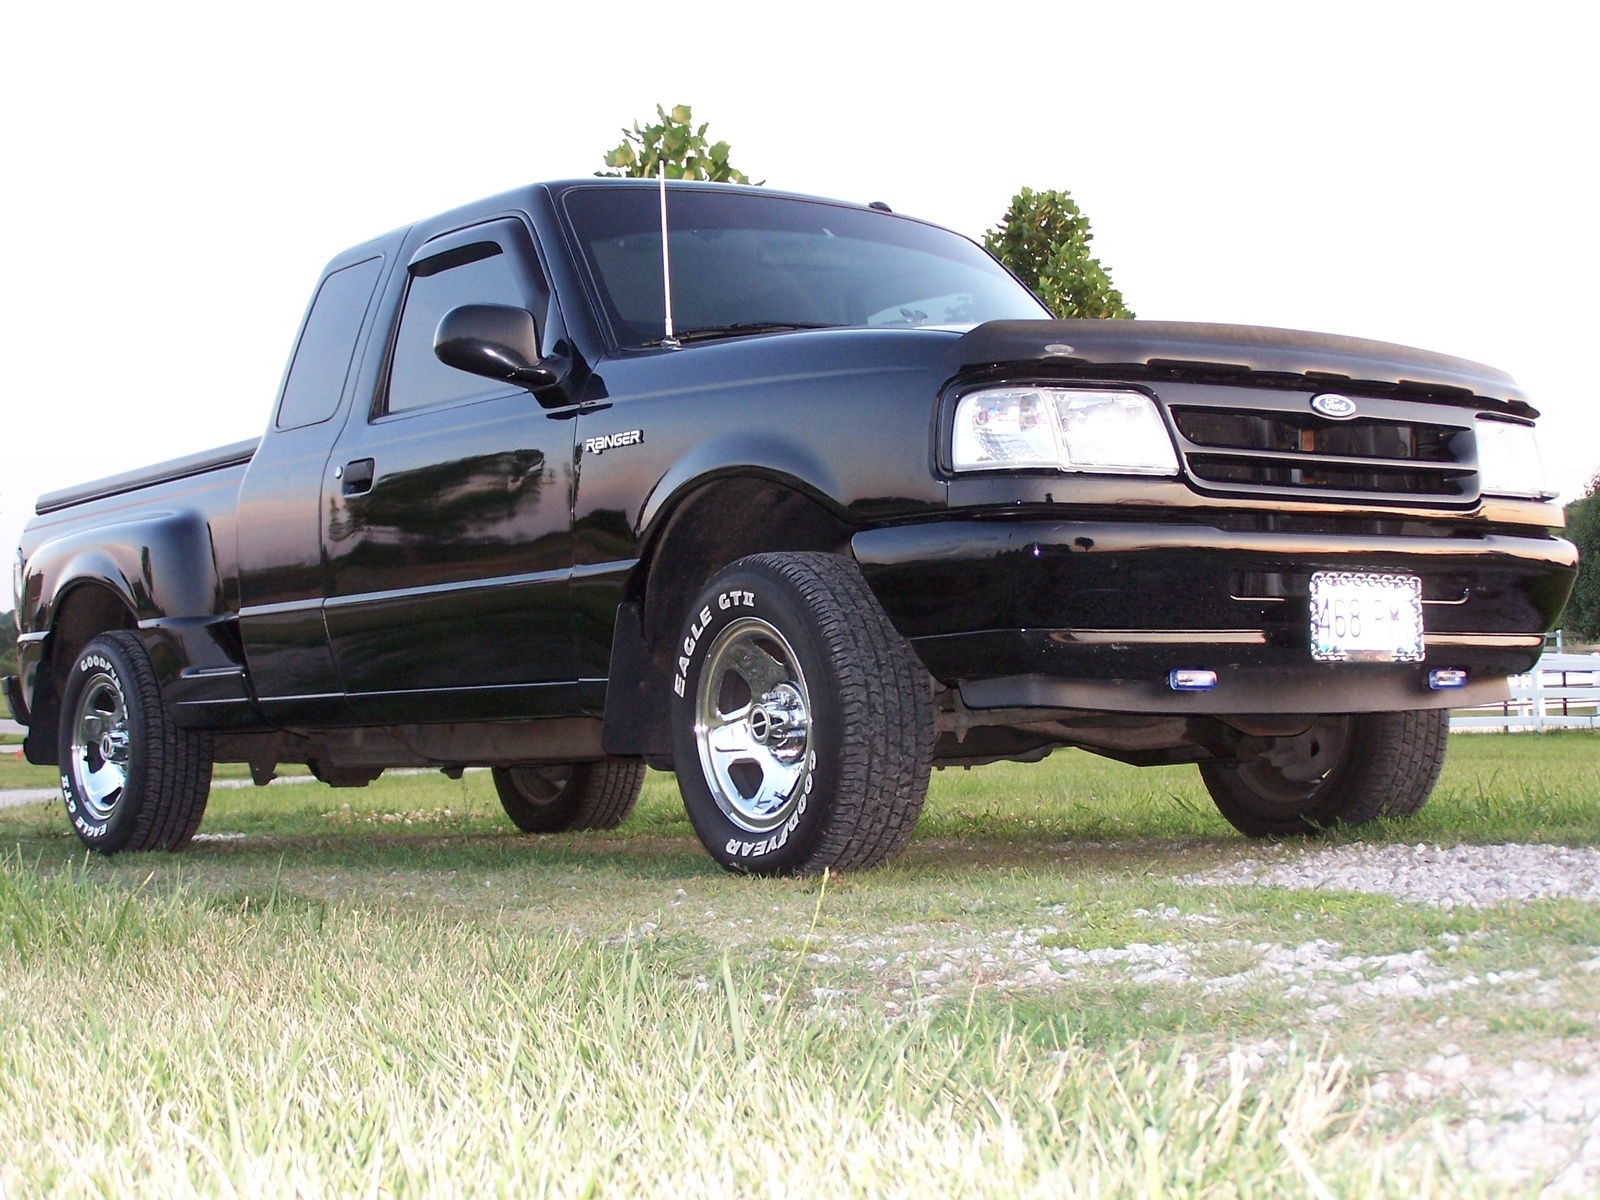 Picture of 1994 ford ranger splash extended cab stepside sb exterior gallery_worthy